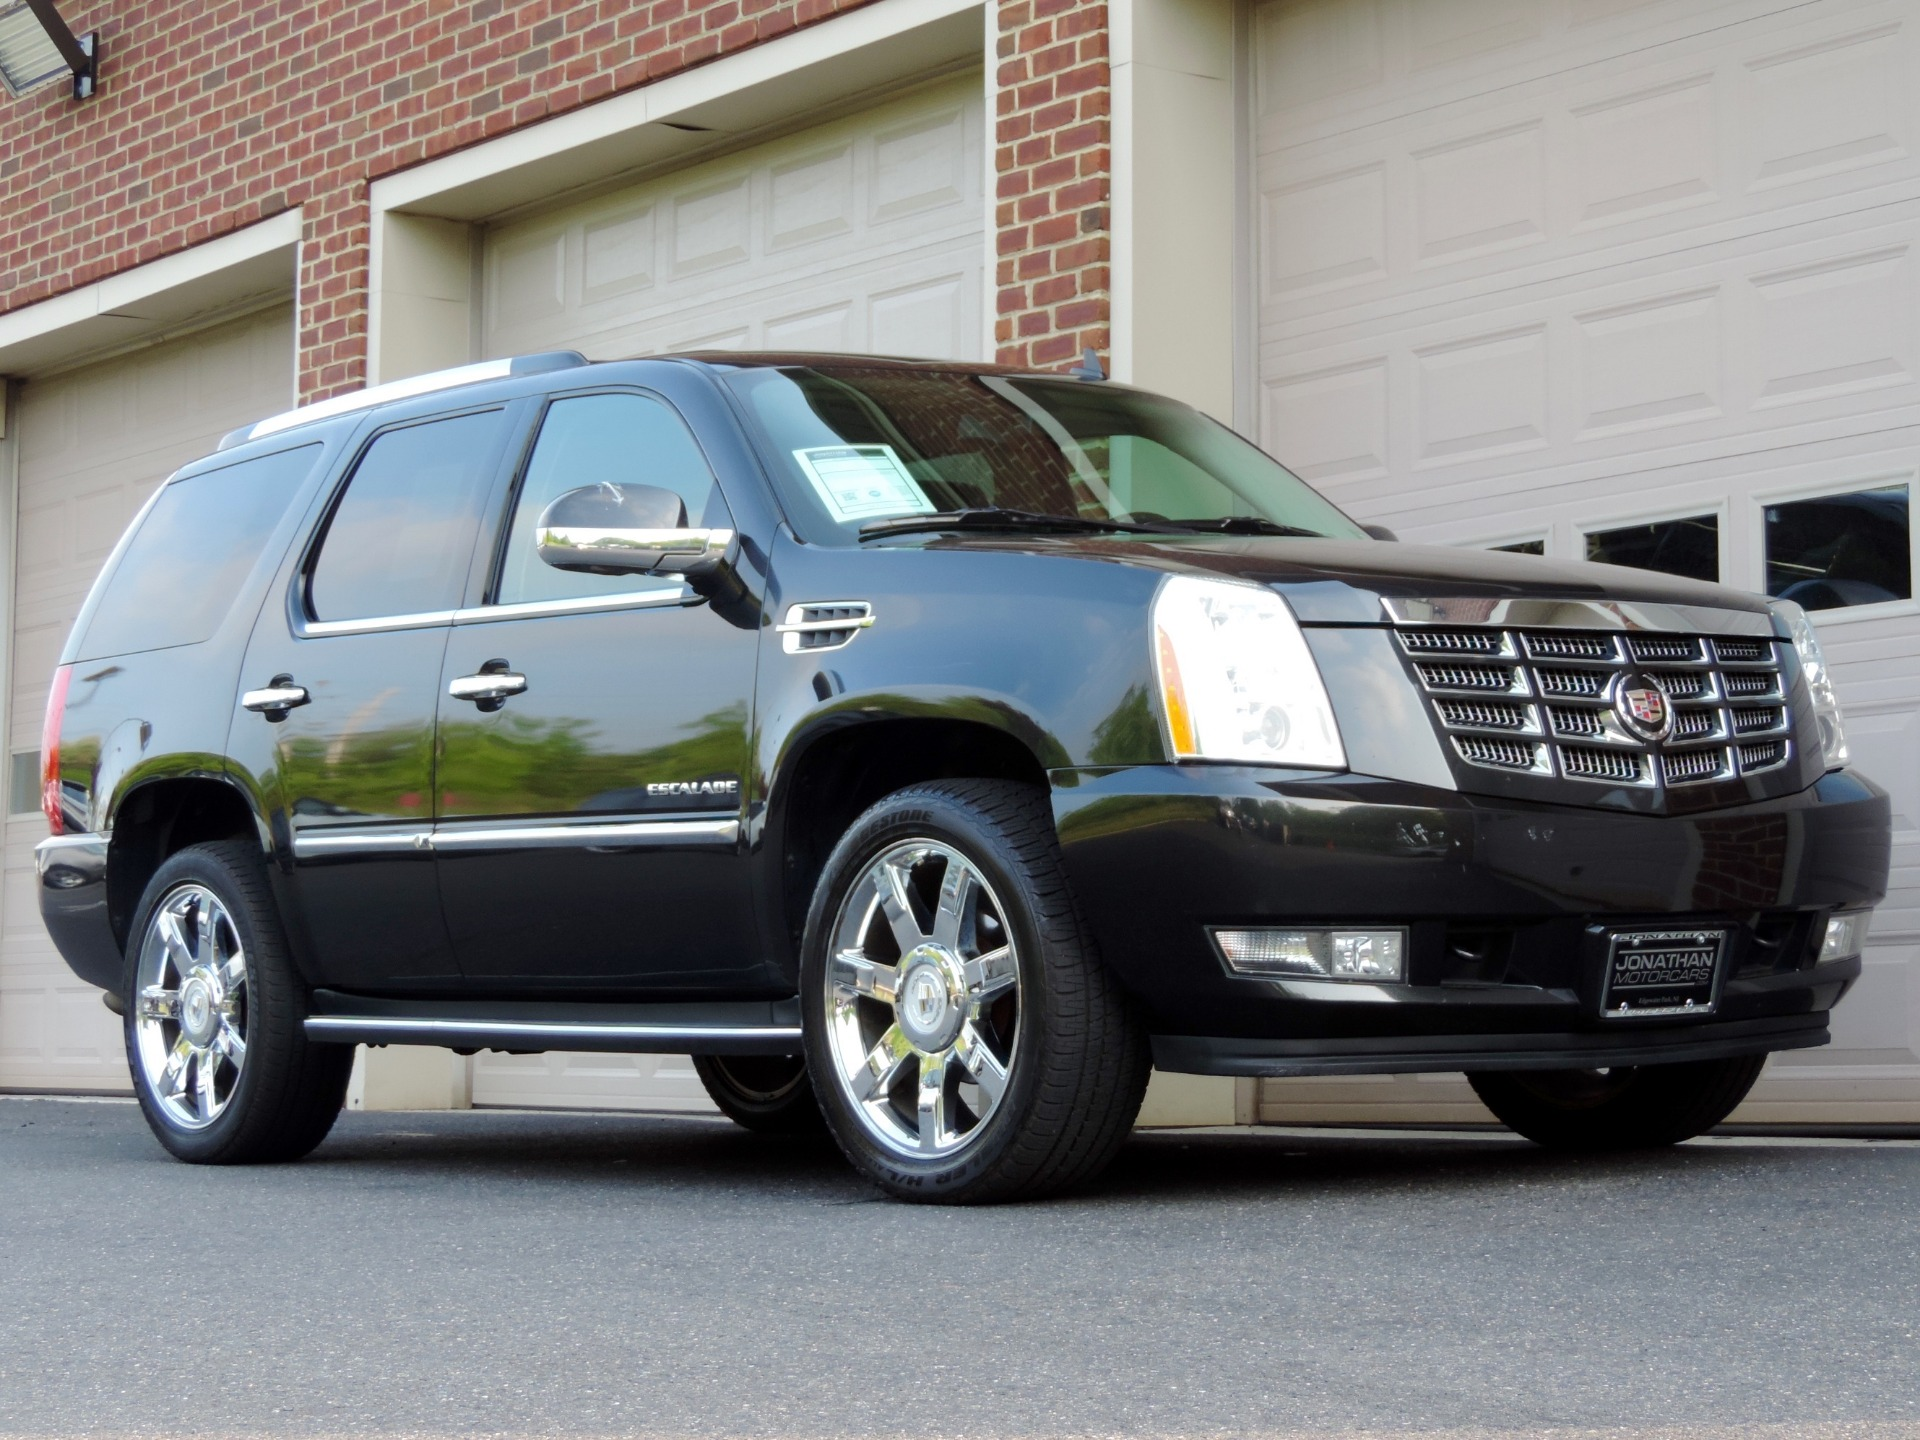 2010 Cadillac Escalade Luxury Stock 264866 For Sale Near Edgewater Trailer Wiring Used